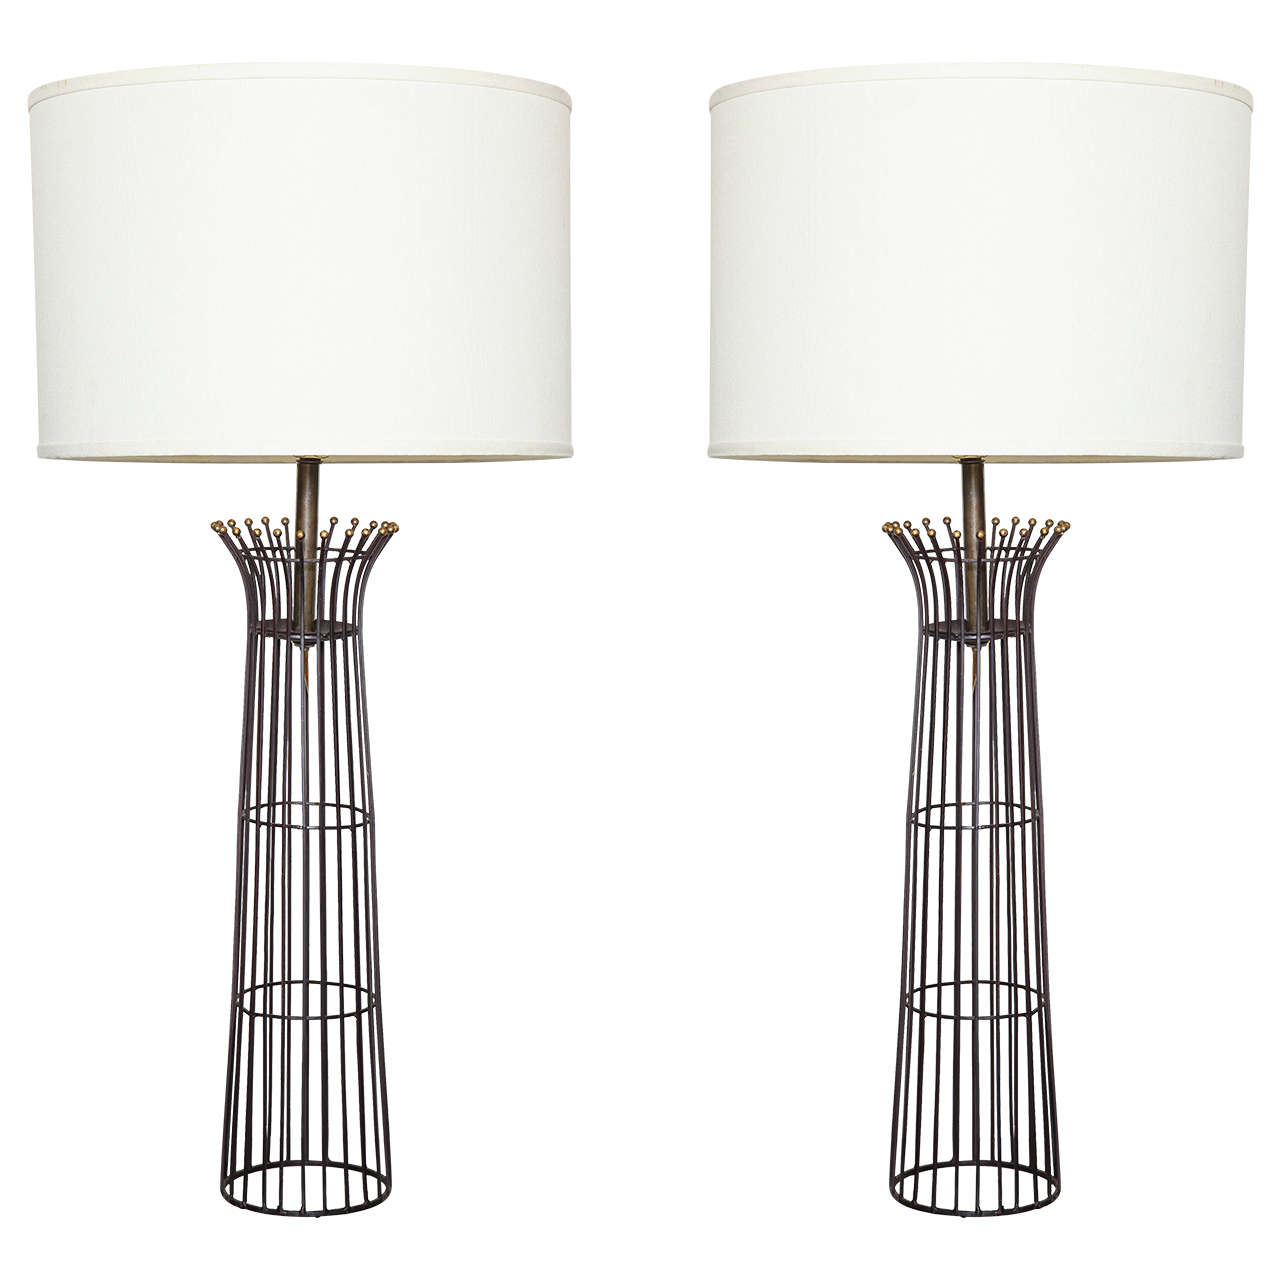 Pair of wrought iron table lamps at 1stdibs mozeypictures Gallery